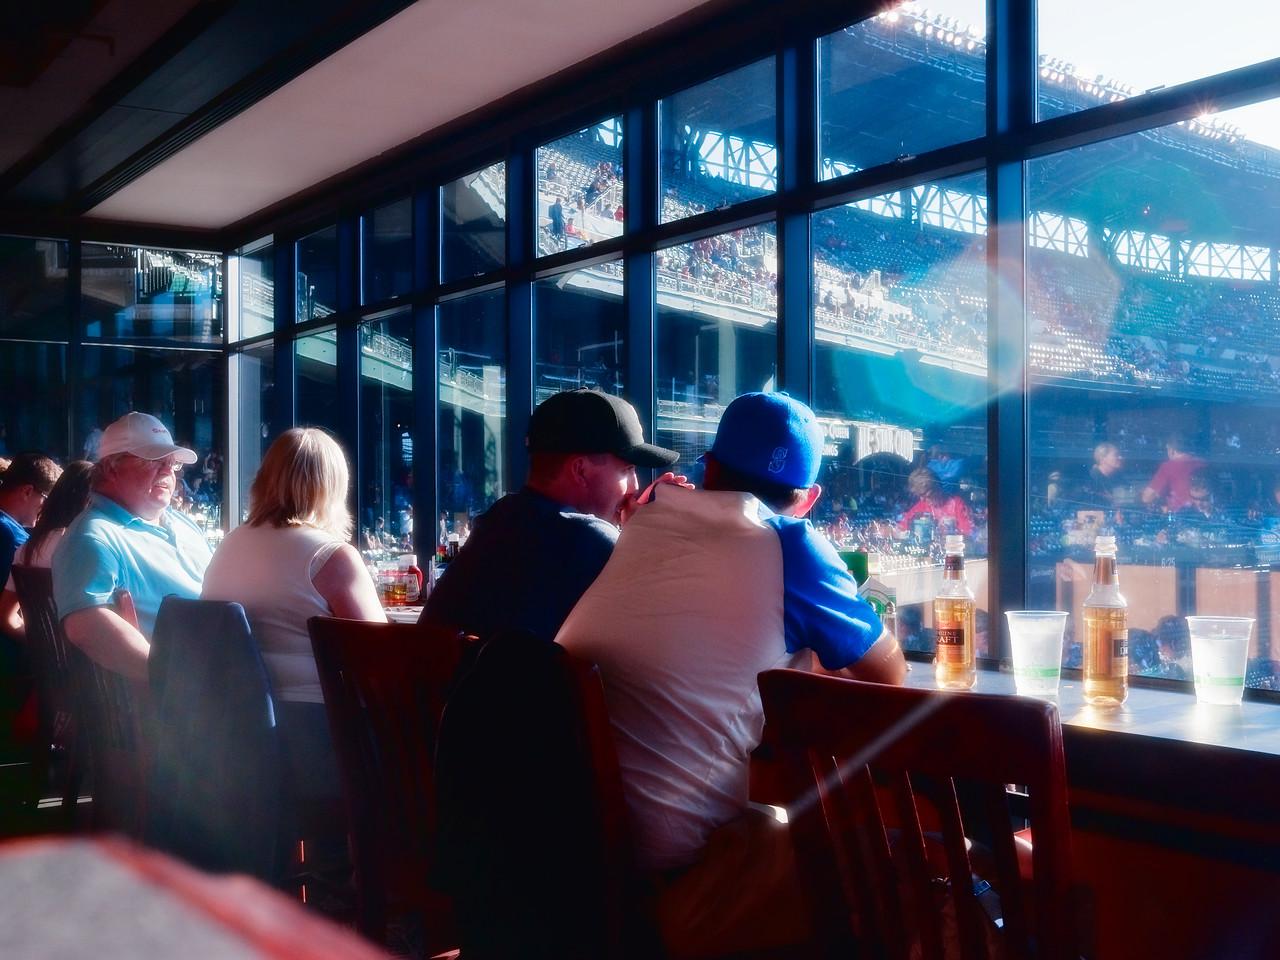 14 Aug 2011: A sunny day in the Hit It Here Cafe at Safeco Field.